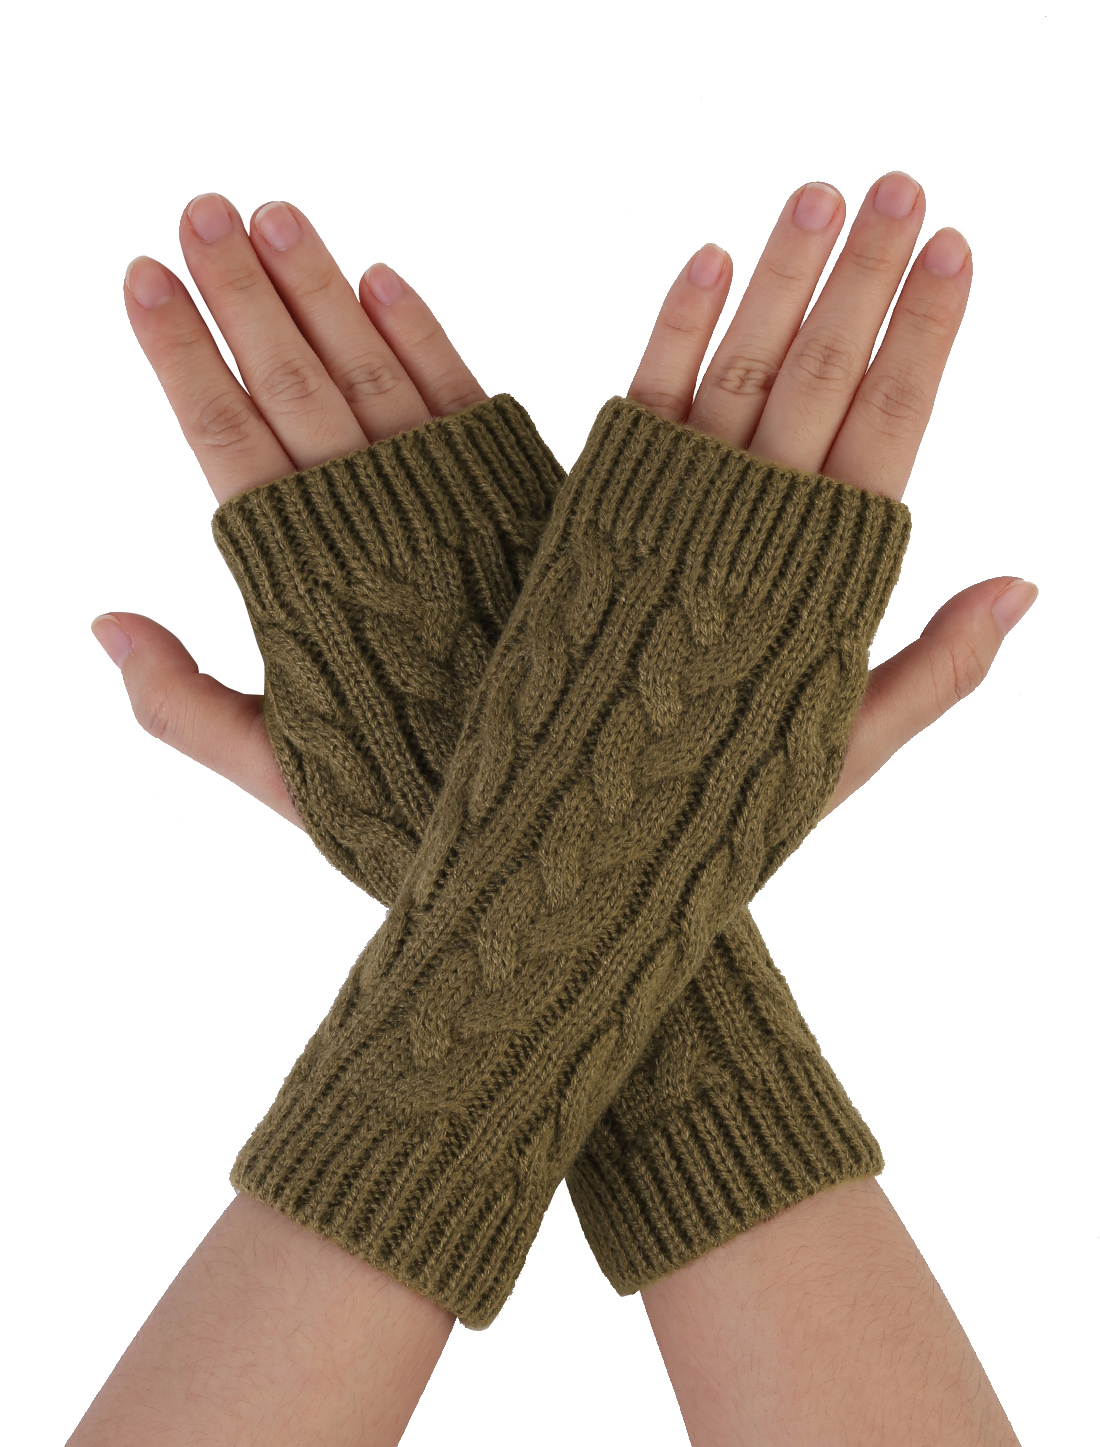 Unisex Thumbhole Fingerless Cable Knit Knitted Gloves Brown